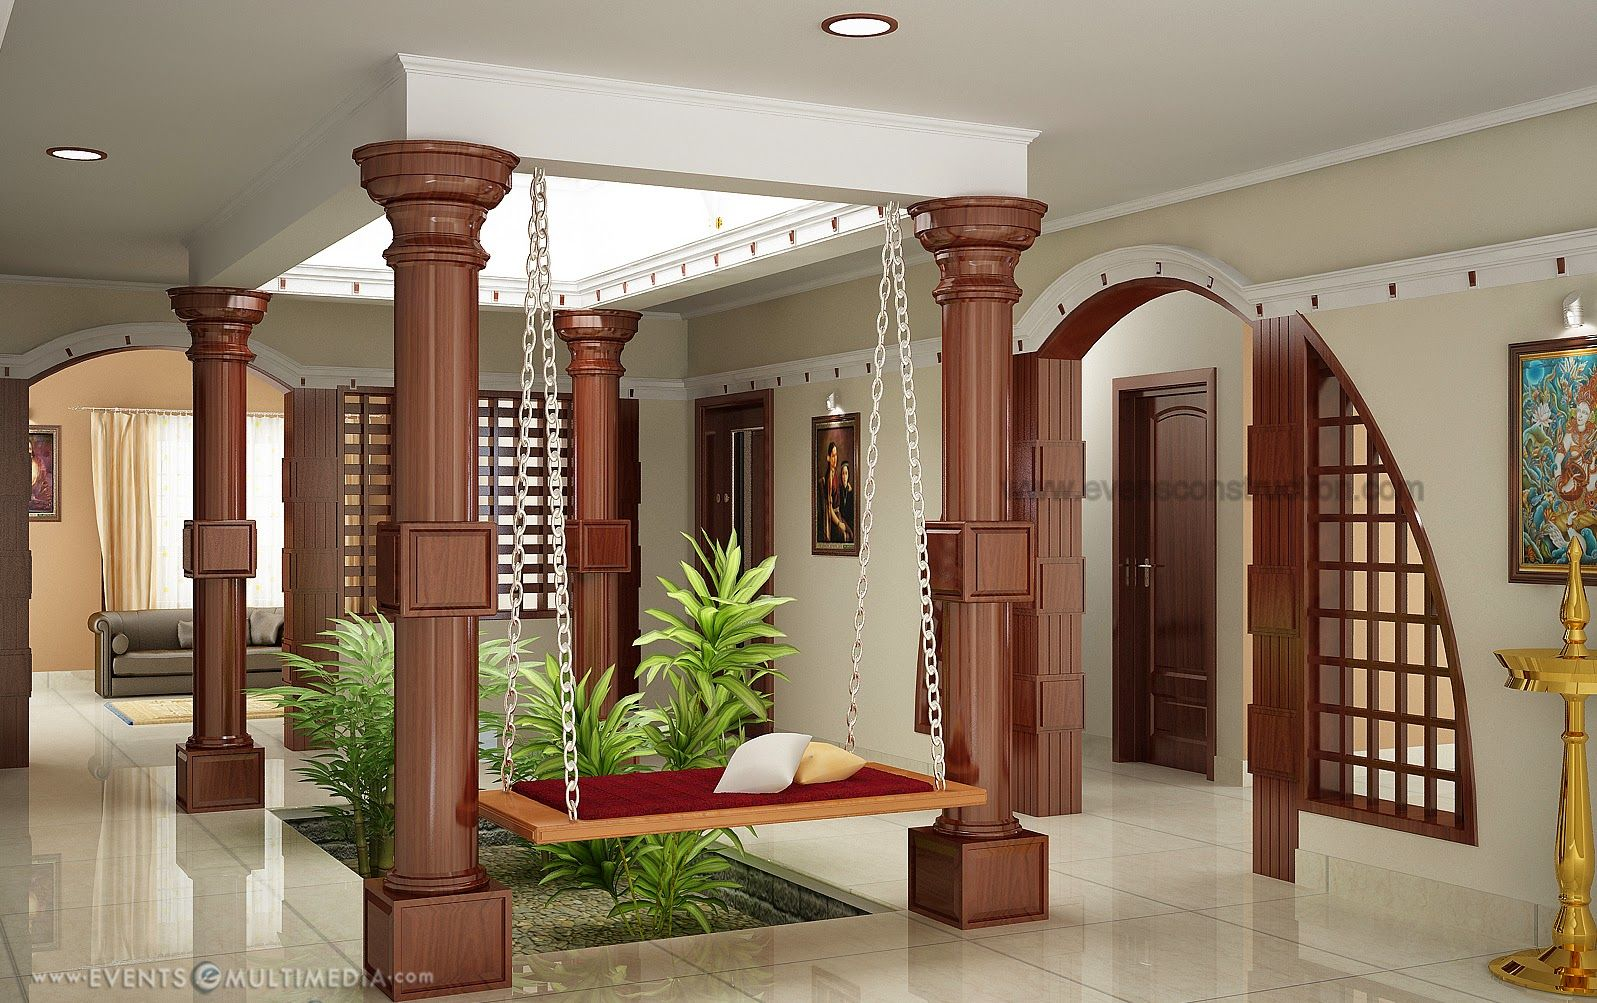 3 Bedroom Tradition Kerala Home With Nadumuttam Part - 33: Kerala Home With Courtyard Wooden Pillers Small Courtyard (open Roof) Near  To Living Area Wooden Partation Between Kitchen And Living Area